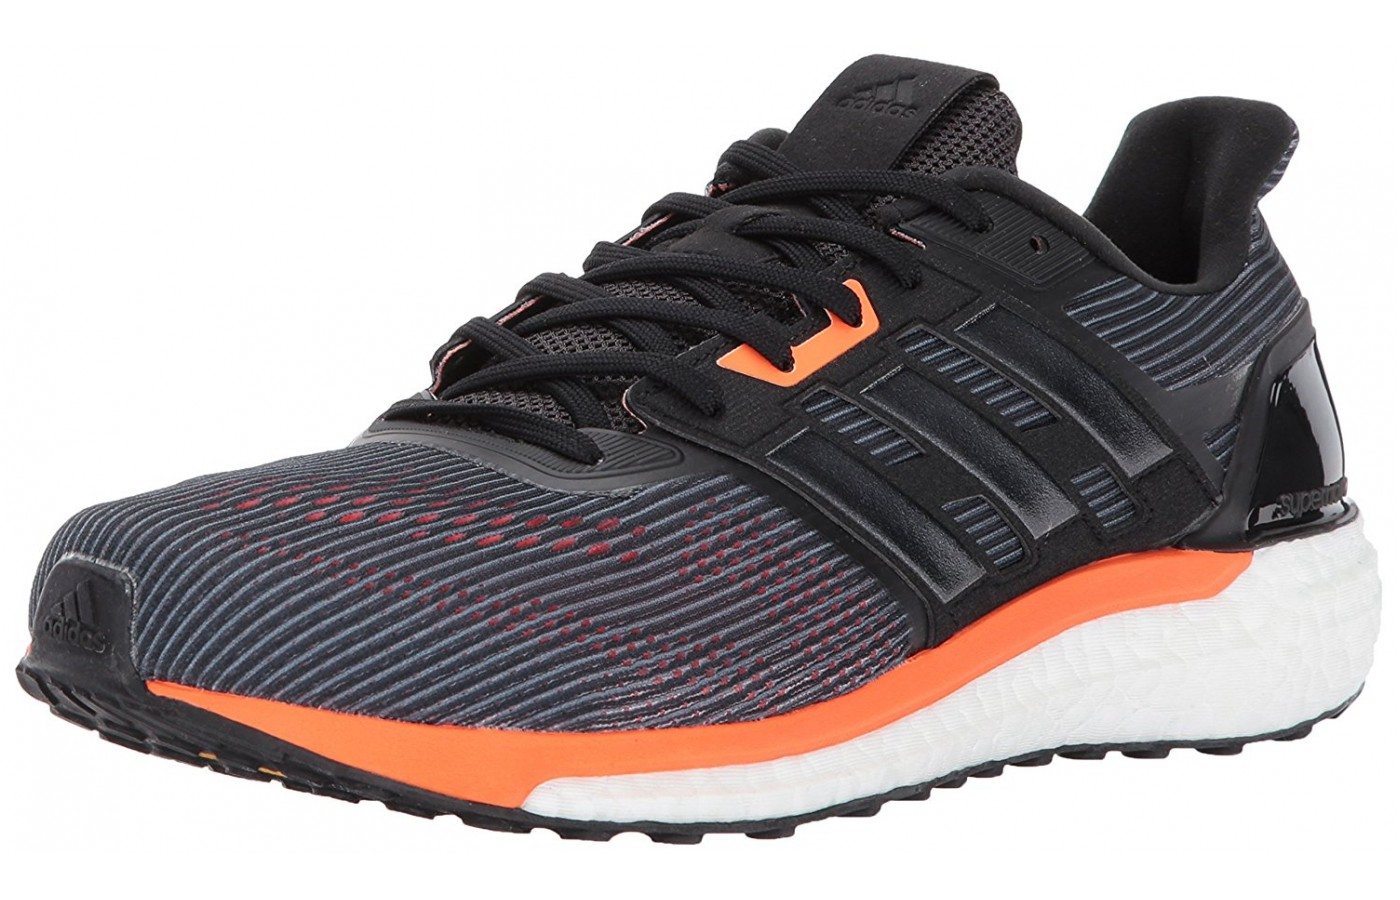 686c92f279e16 Adidas Supernova Reviewed   Tested for Performance - WalkJogRun